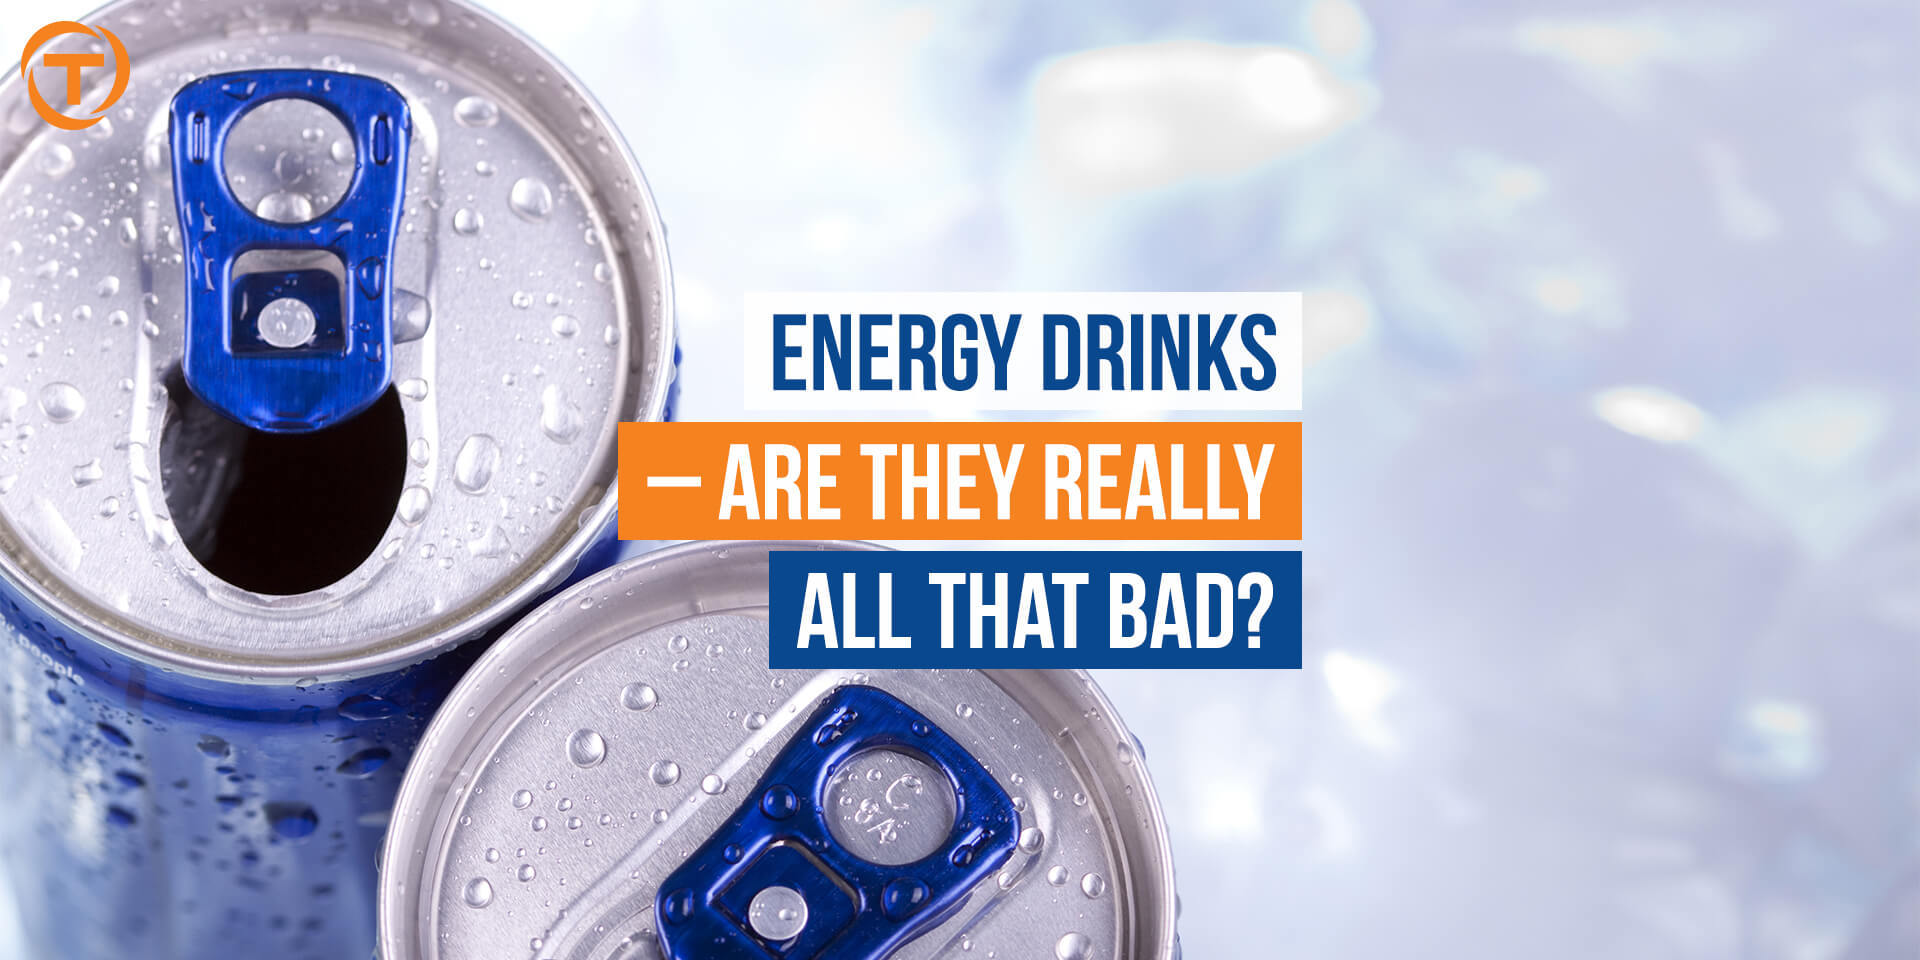 Blog Energy Drinks Are They Really That Bad